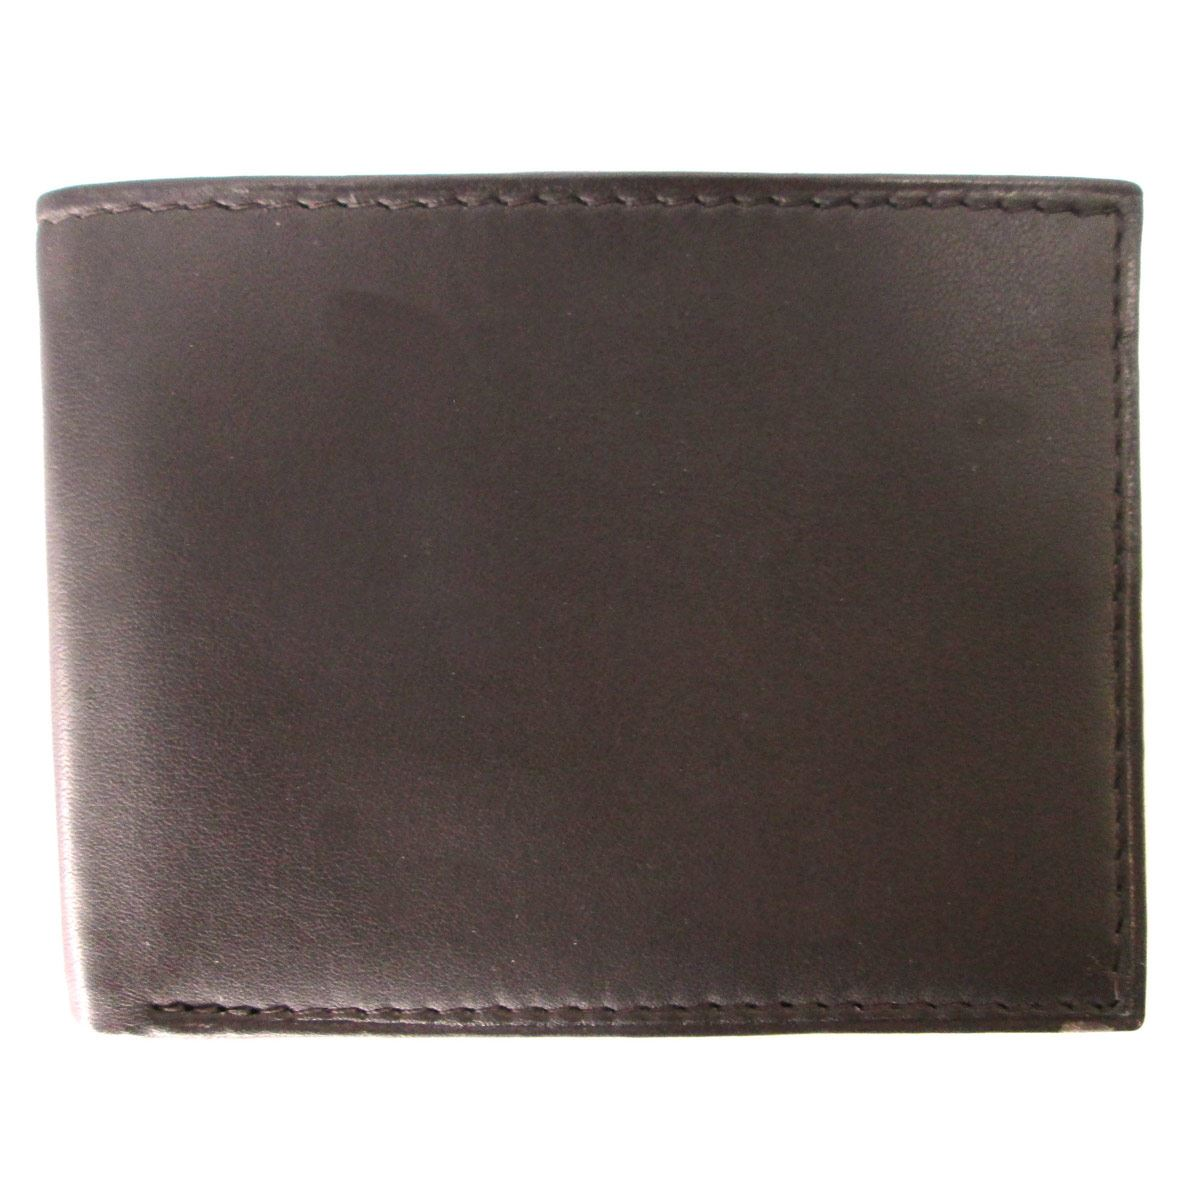 Billetera Café L77-0091-7 Perry Ellis